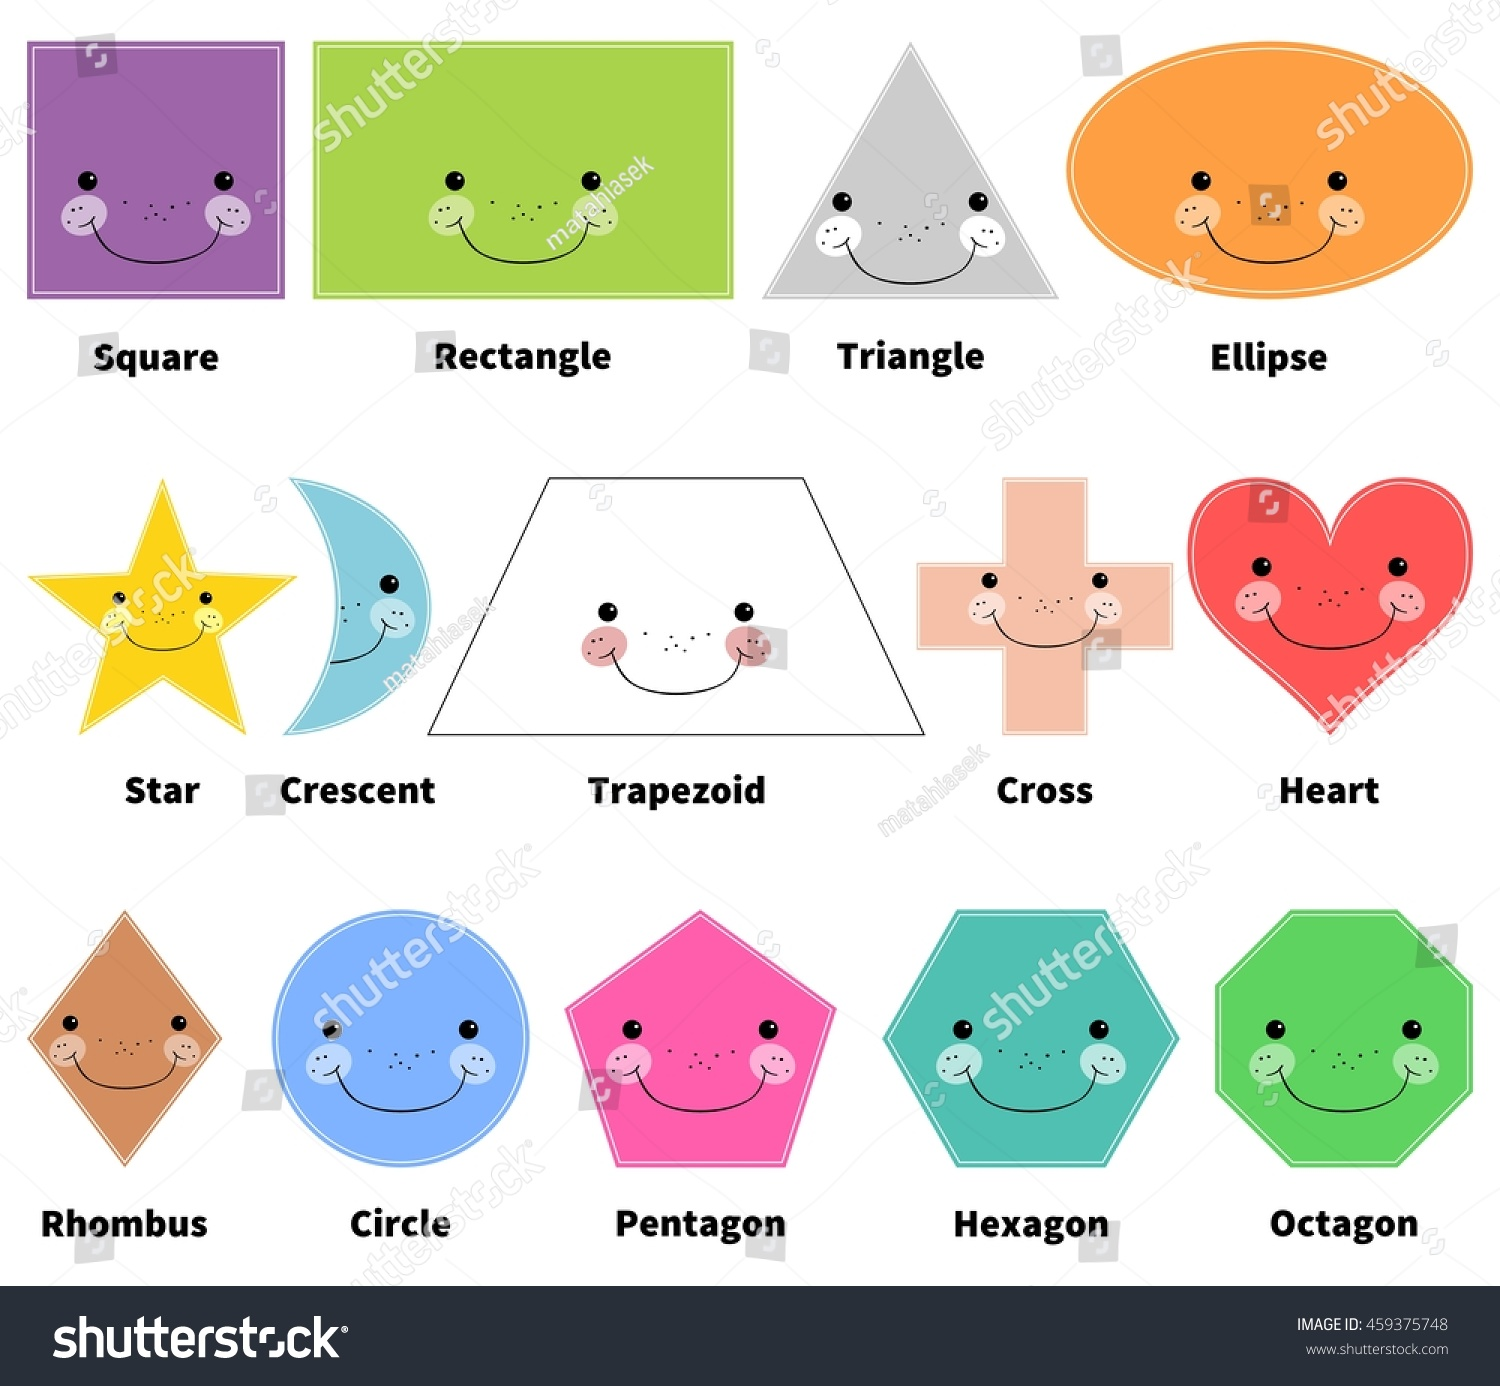 Learn 2d Shapes Cartoon Smiling Shapes Stock Vector